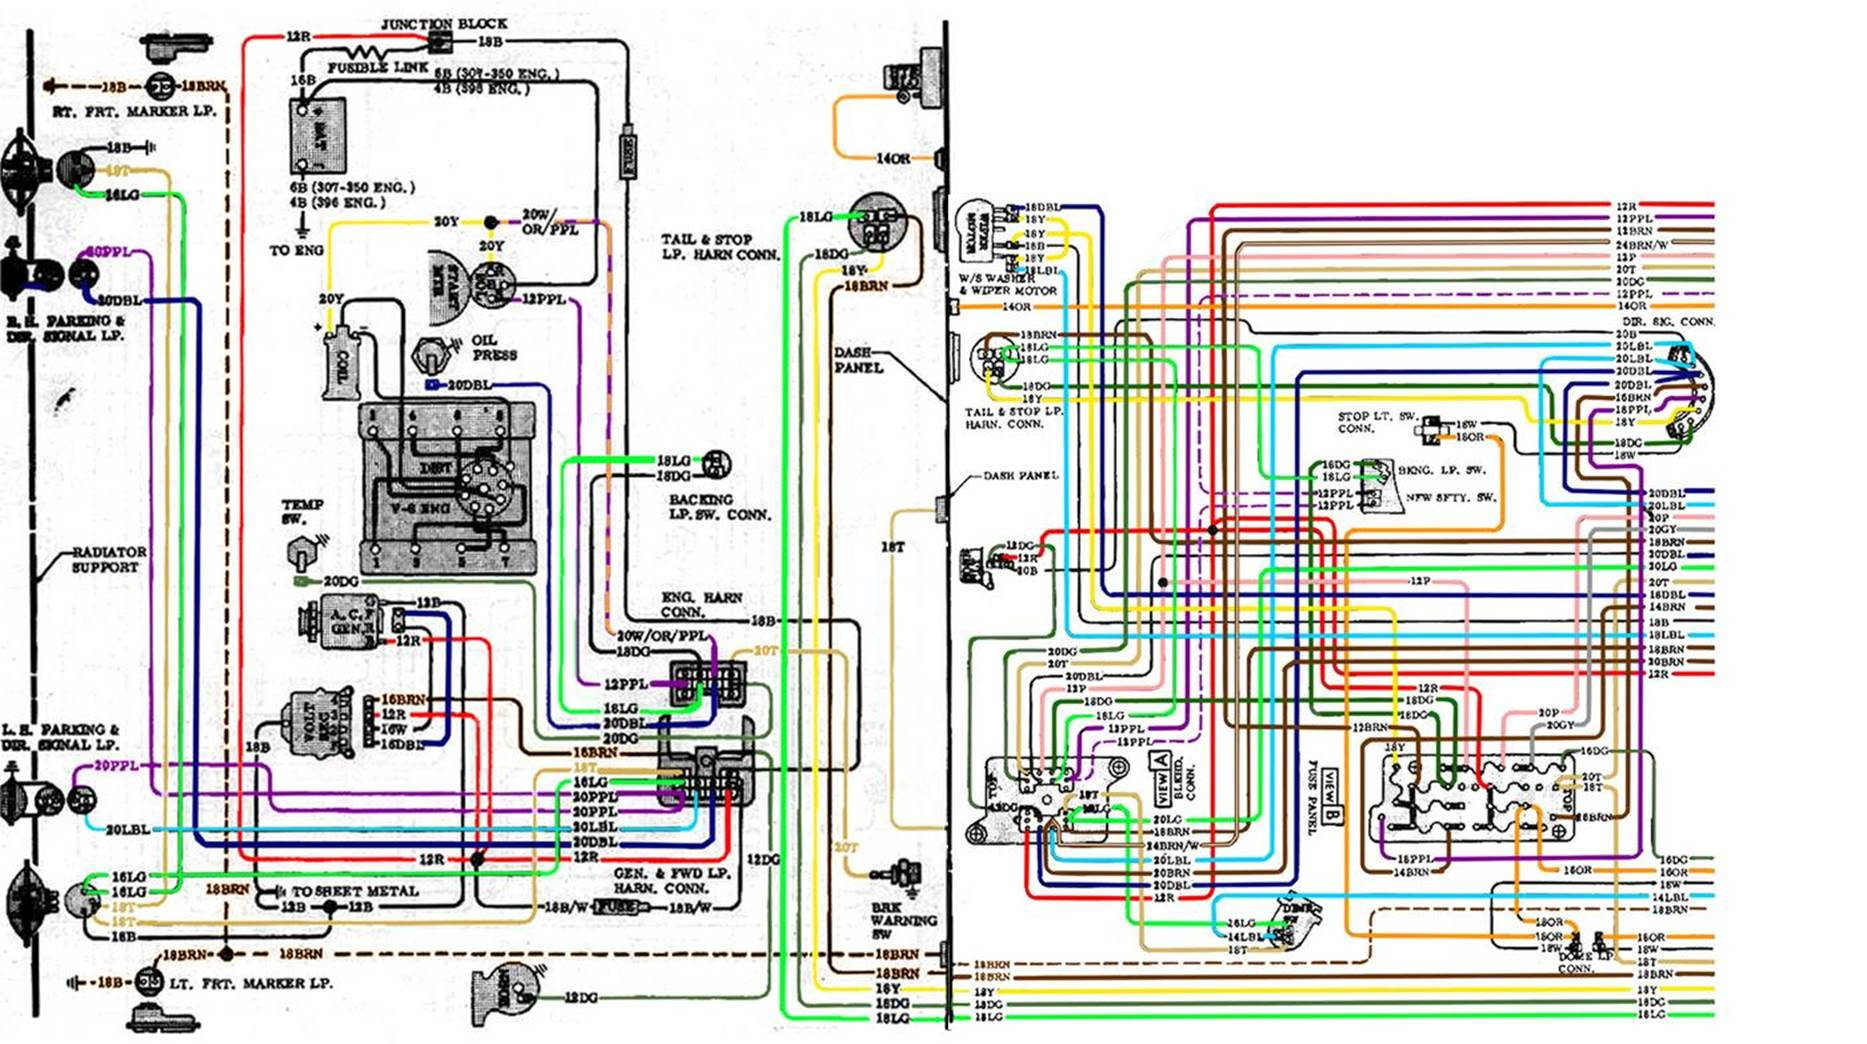 71 chevelle wiring harness - wiring diagram export rock-bitter -  rock-bitter.congressosifo2018.it  congressosifo2018.it